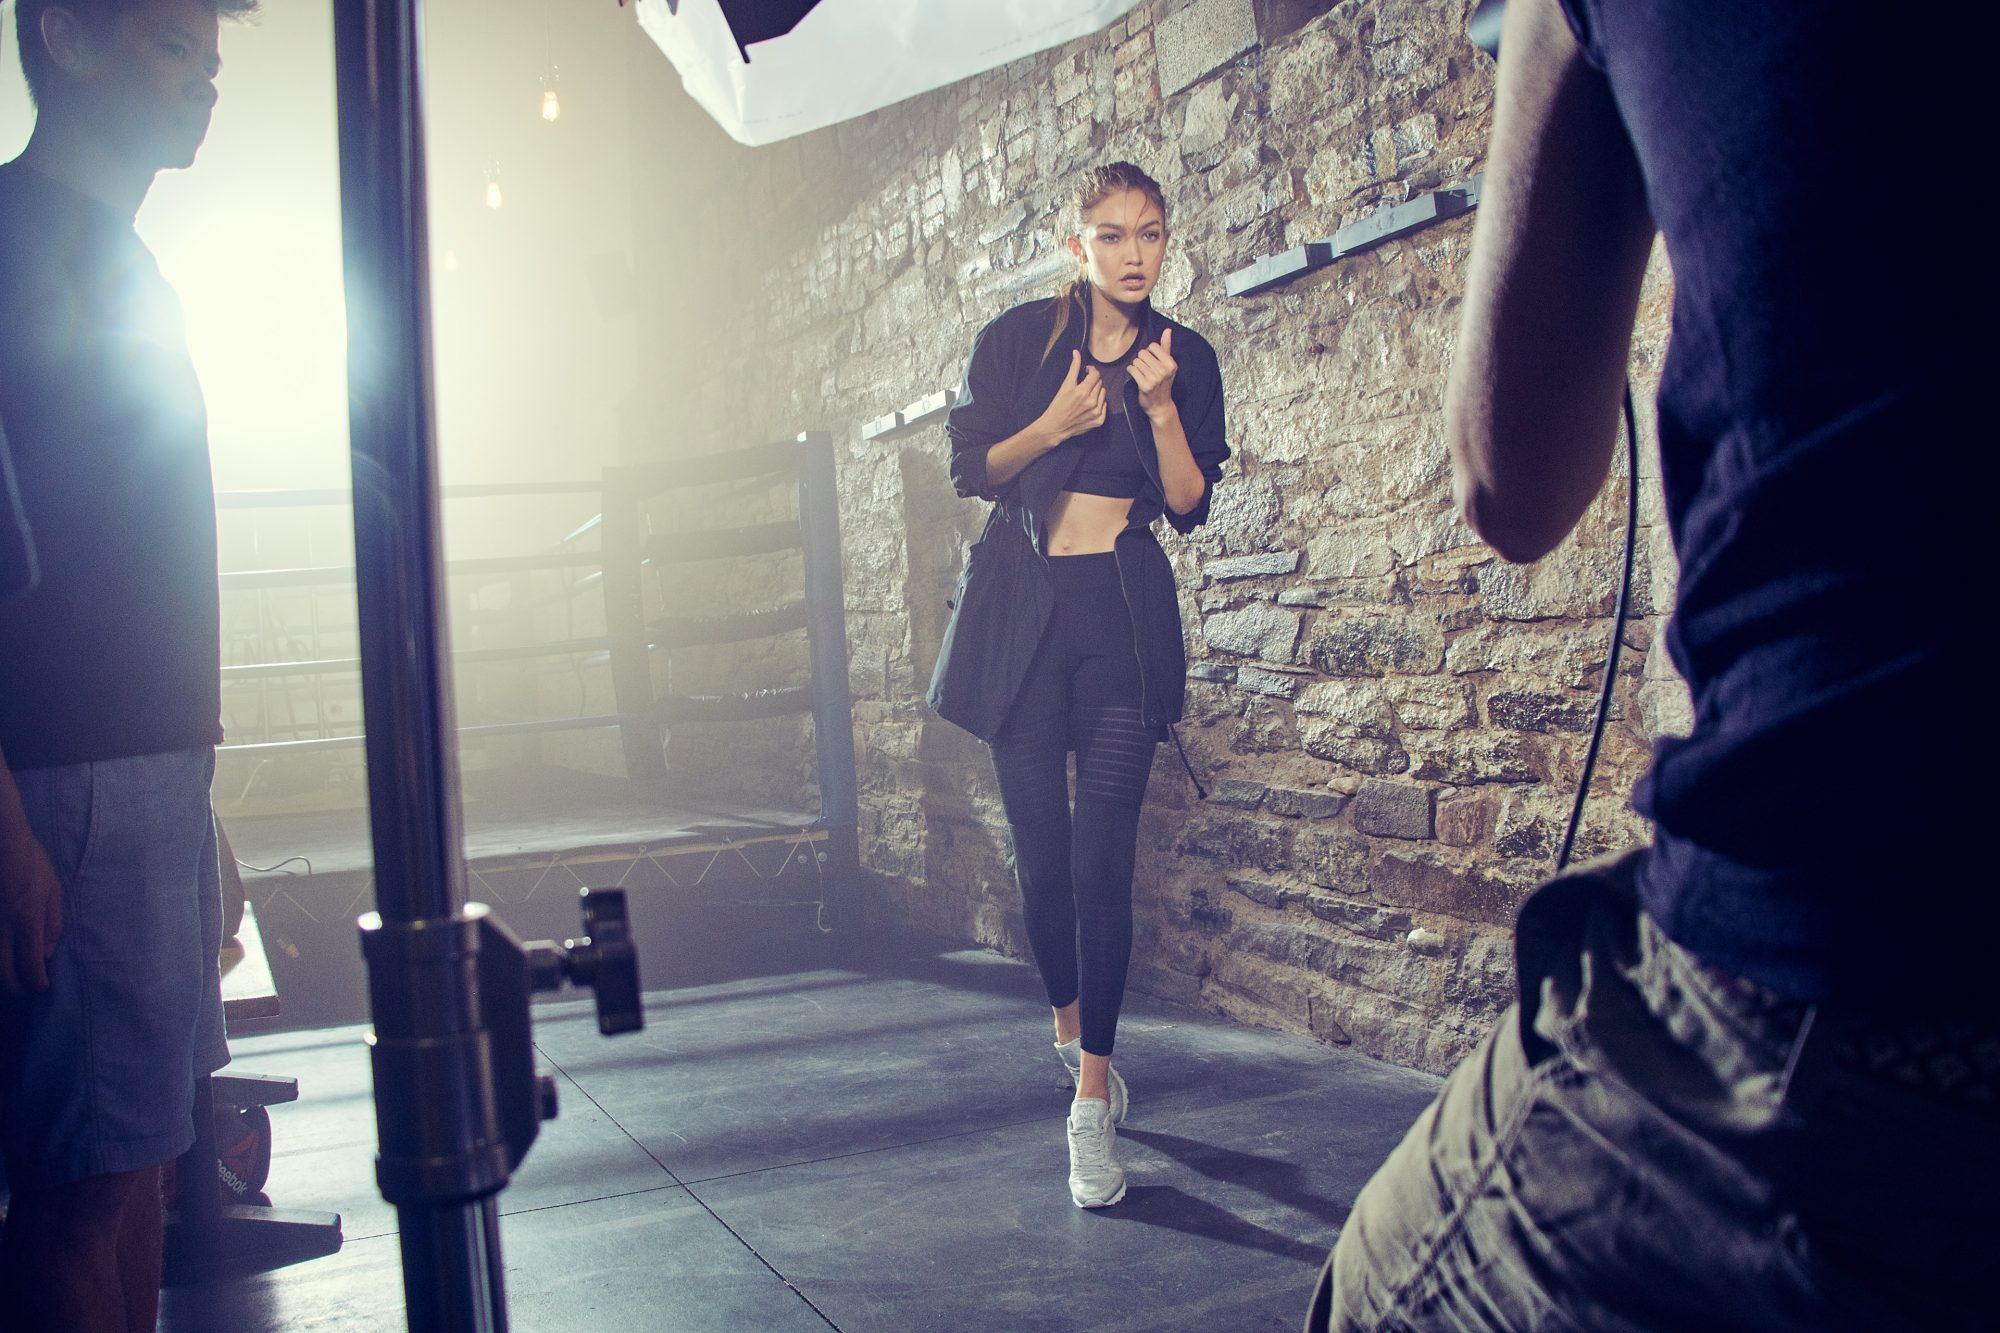 GIGI-HADID-JOINS-FORCES-WITH-REEBOK-TO-TELL-NEXT-PHASE-OF-BE-MORE-HUMAN-CAMPAIGN_3.jpg